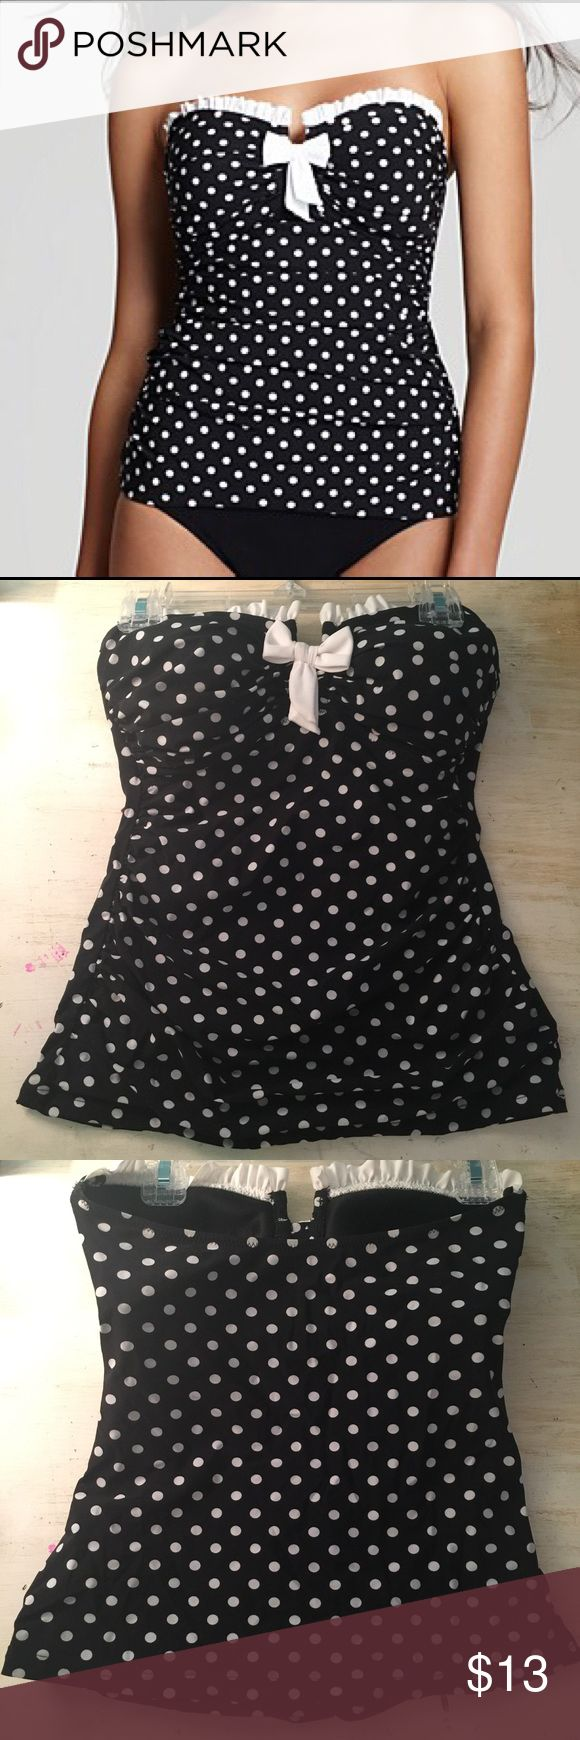 Strapless Black and White Polka-dot Tankini Top Adorable Polka-dot strapless swimsuit top! It has been worn once, and it is in perfect condition! Profile Swim